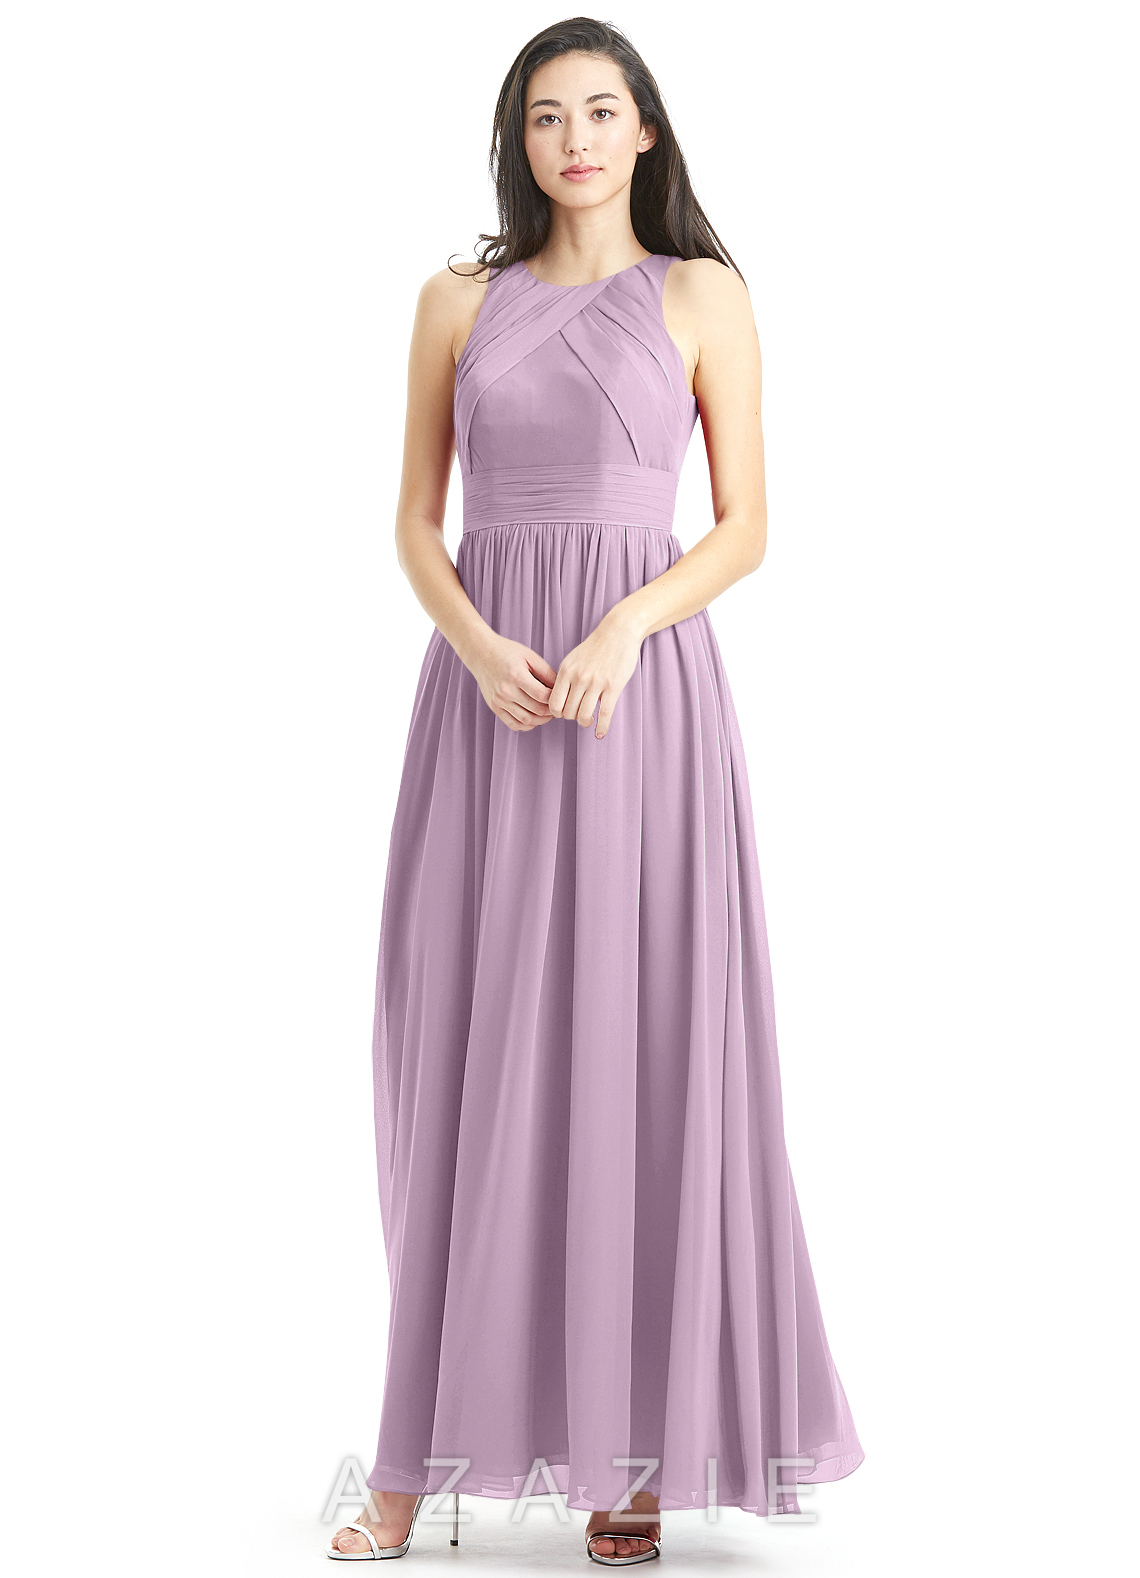 be4e4baa651 Azazie Harper Bridesmaid Dresses